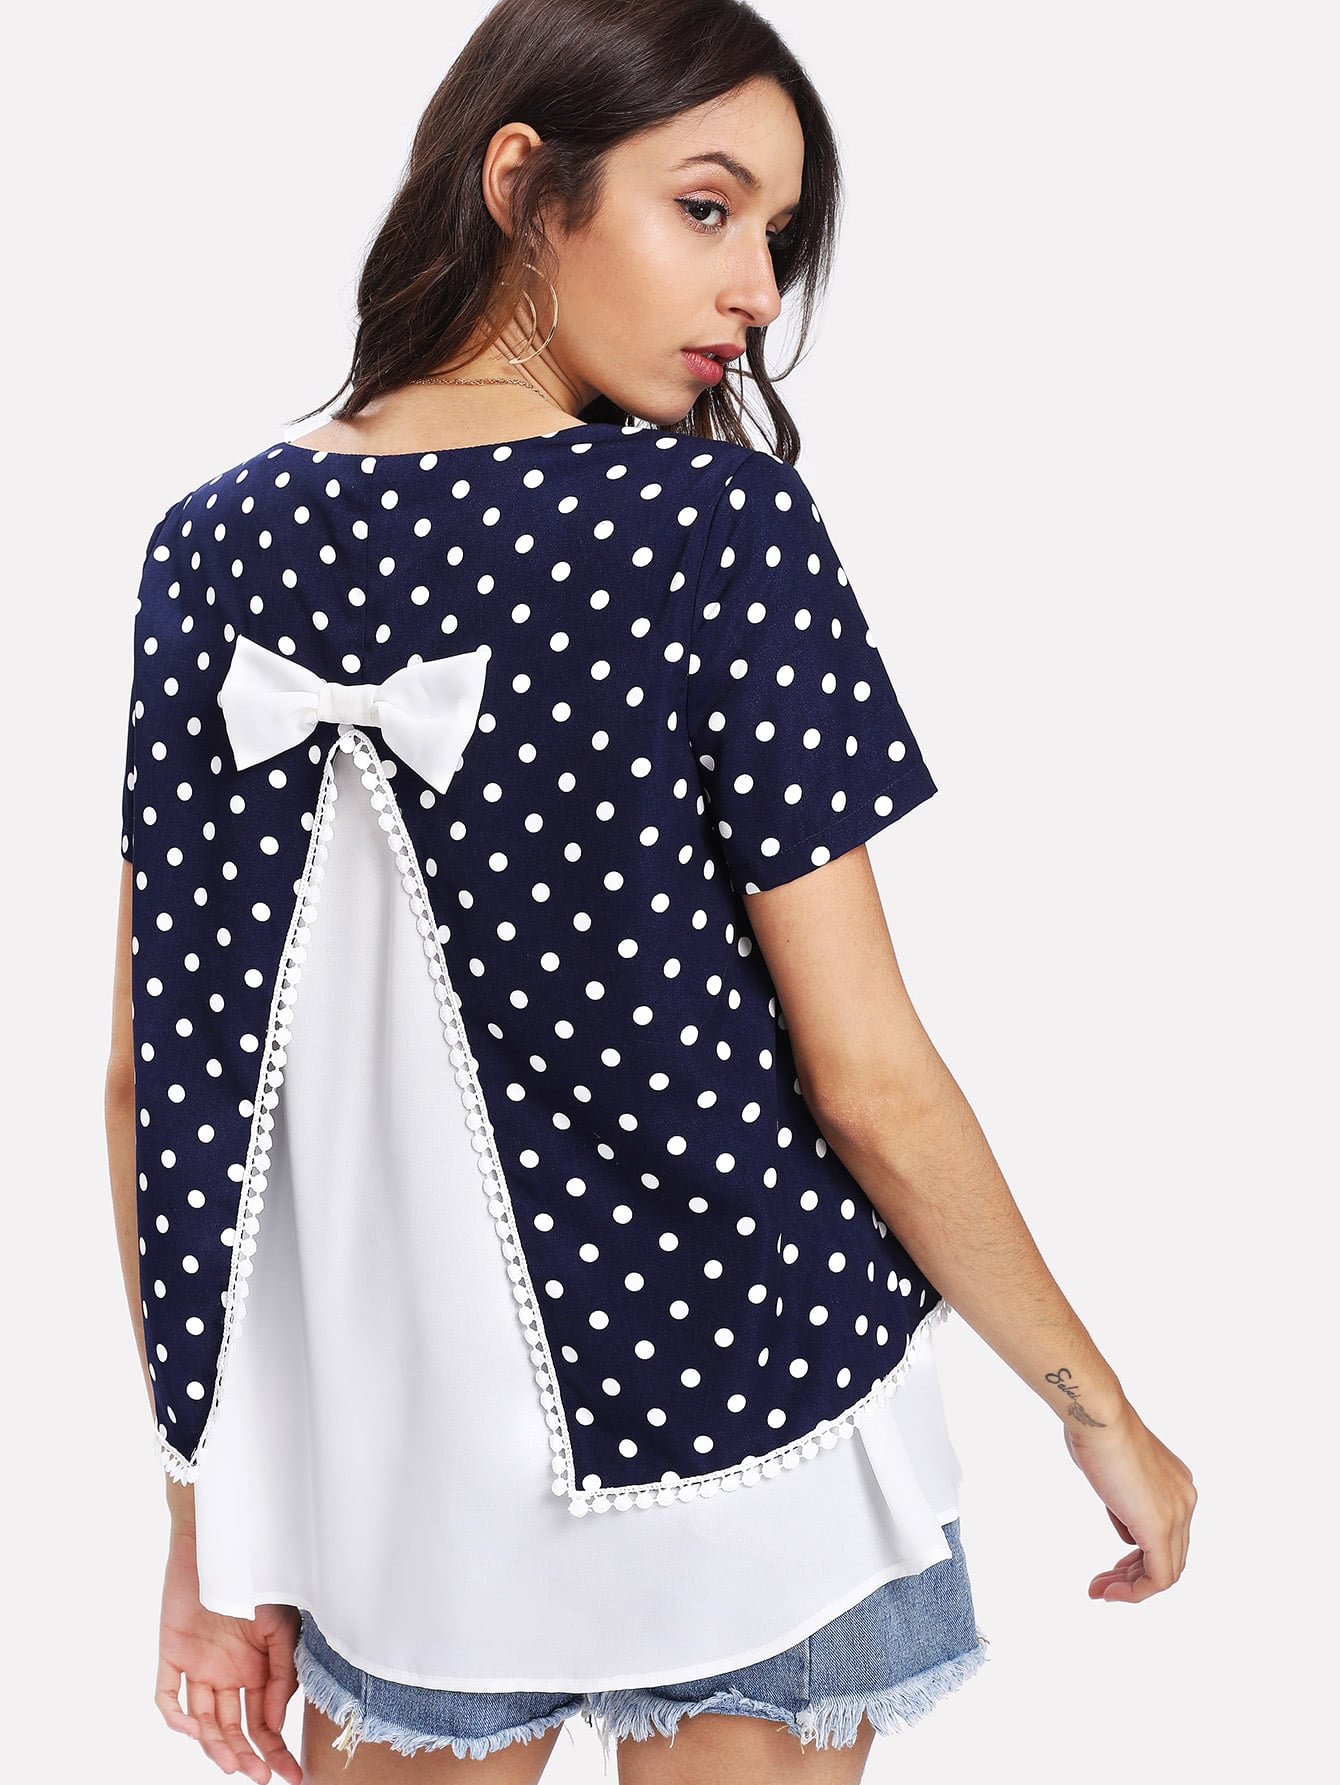 Polka Dot Bow Detail Back 2 In 1 Top школьный автобус b dot